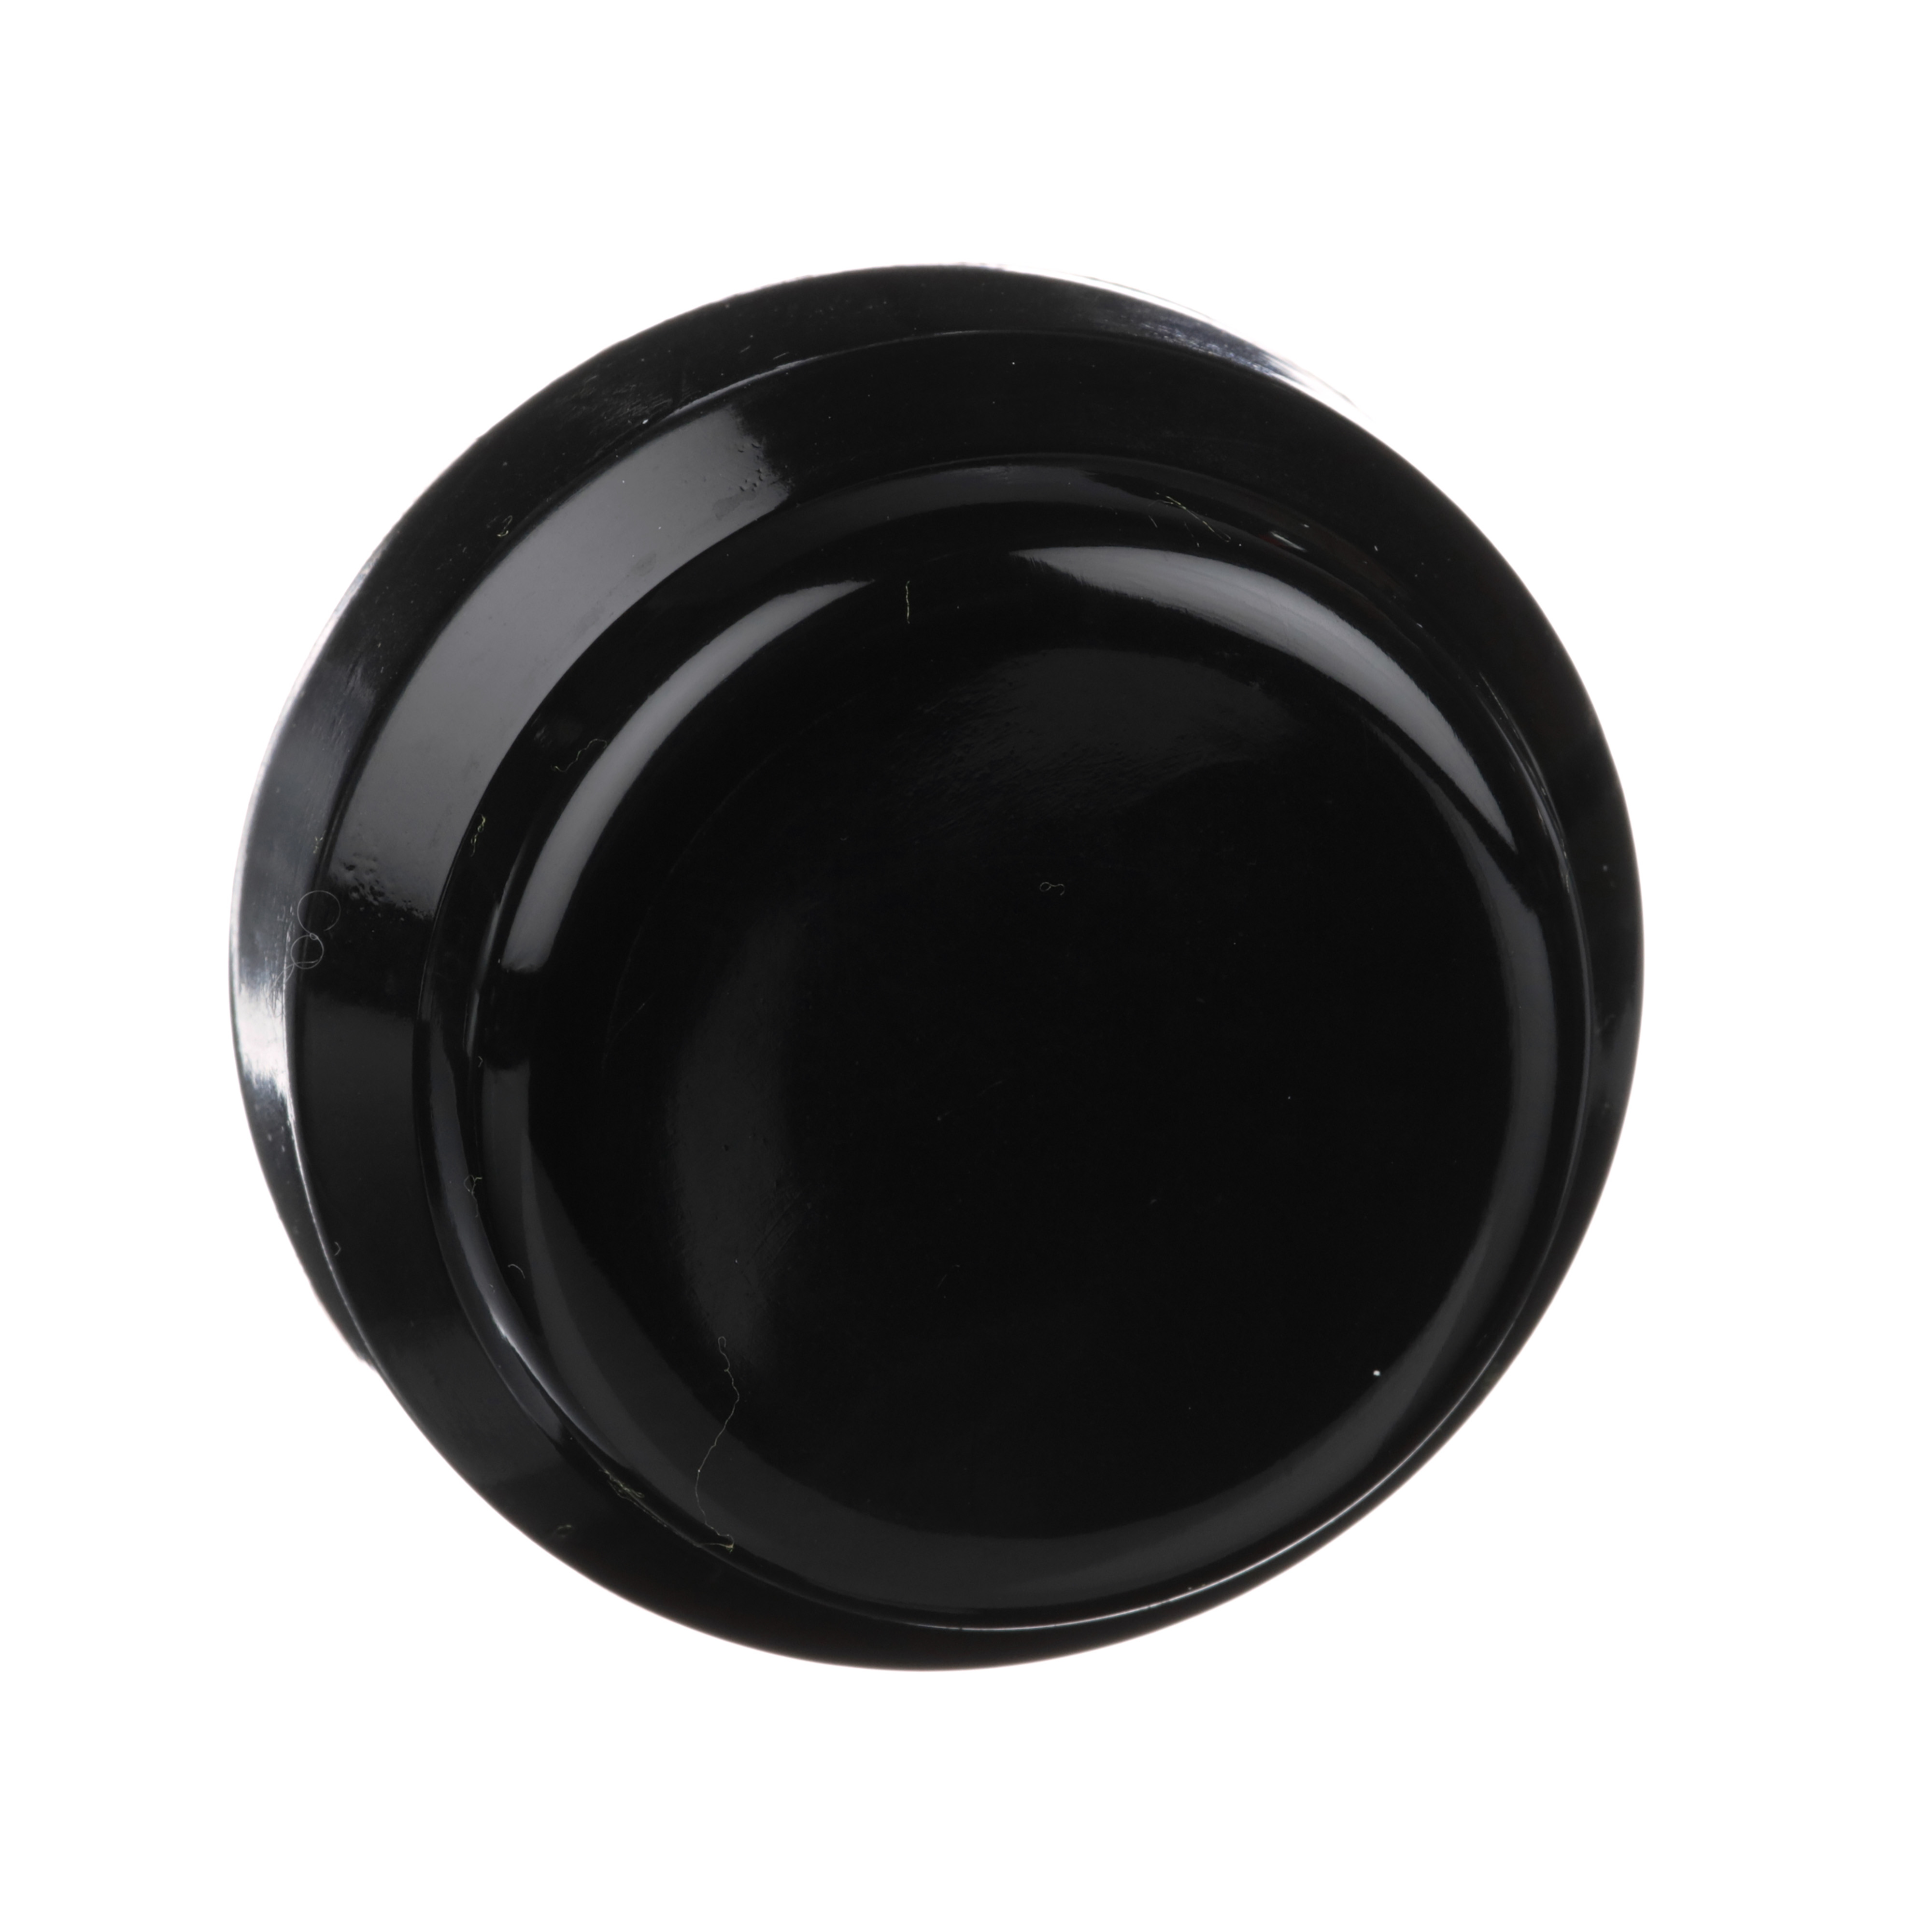 SQUARE D 30mm Push Button, Types K or SK, black protective boot, for nonilluminated push buttons